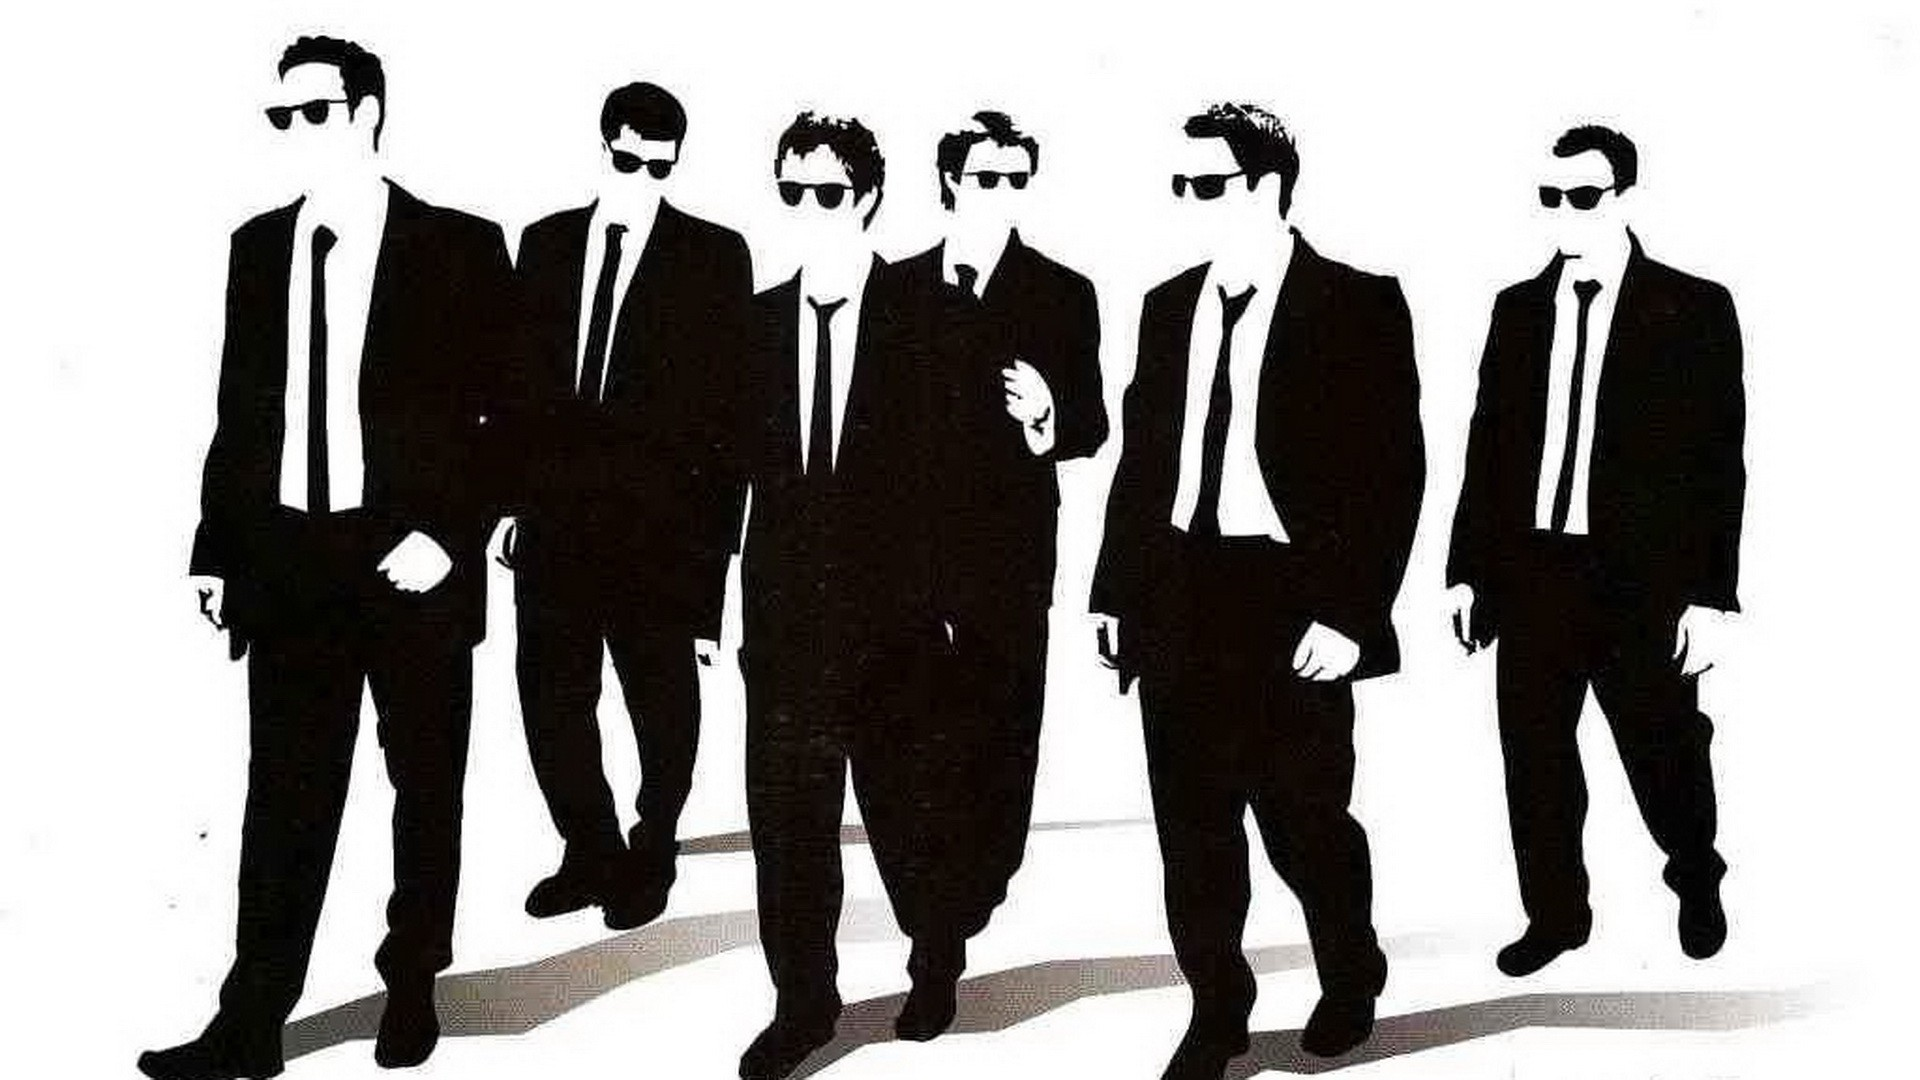 https://cdn.psychologytoday.com/sites/default/files/field_blog_entry_images/Reservoir-Dogs-Fresh-New-Hd-Wallpaper.jpg